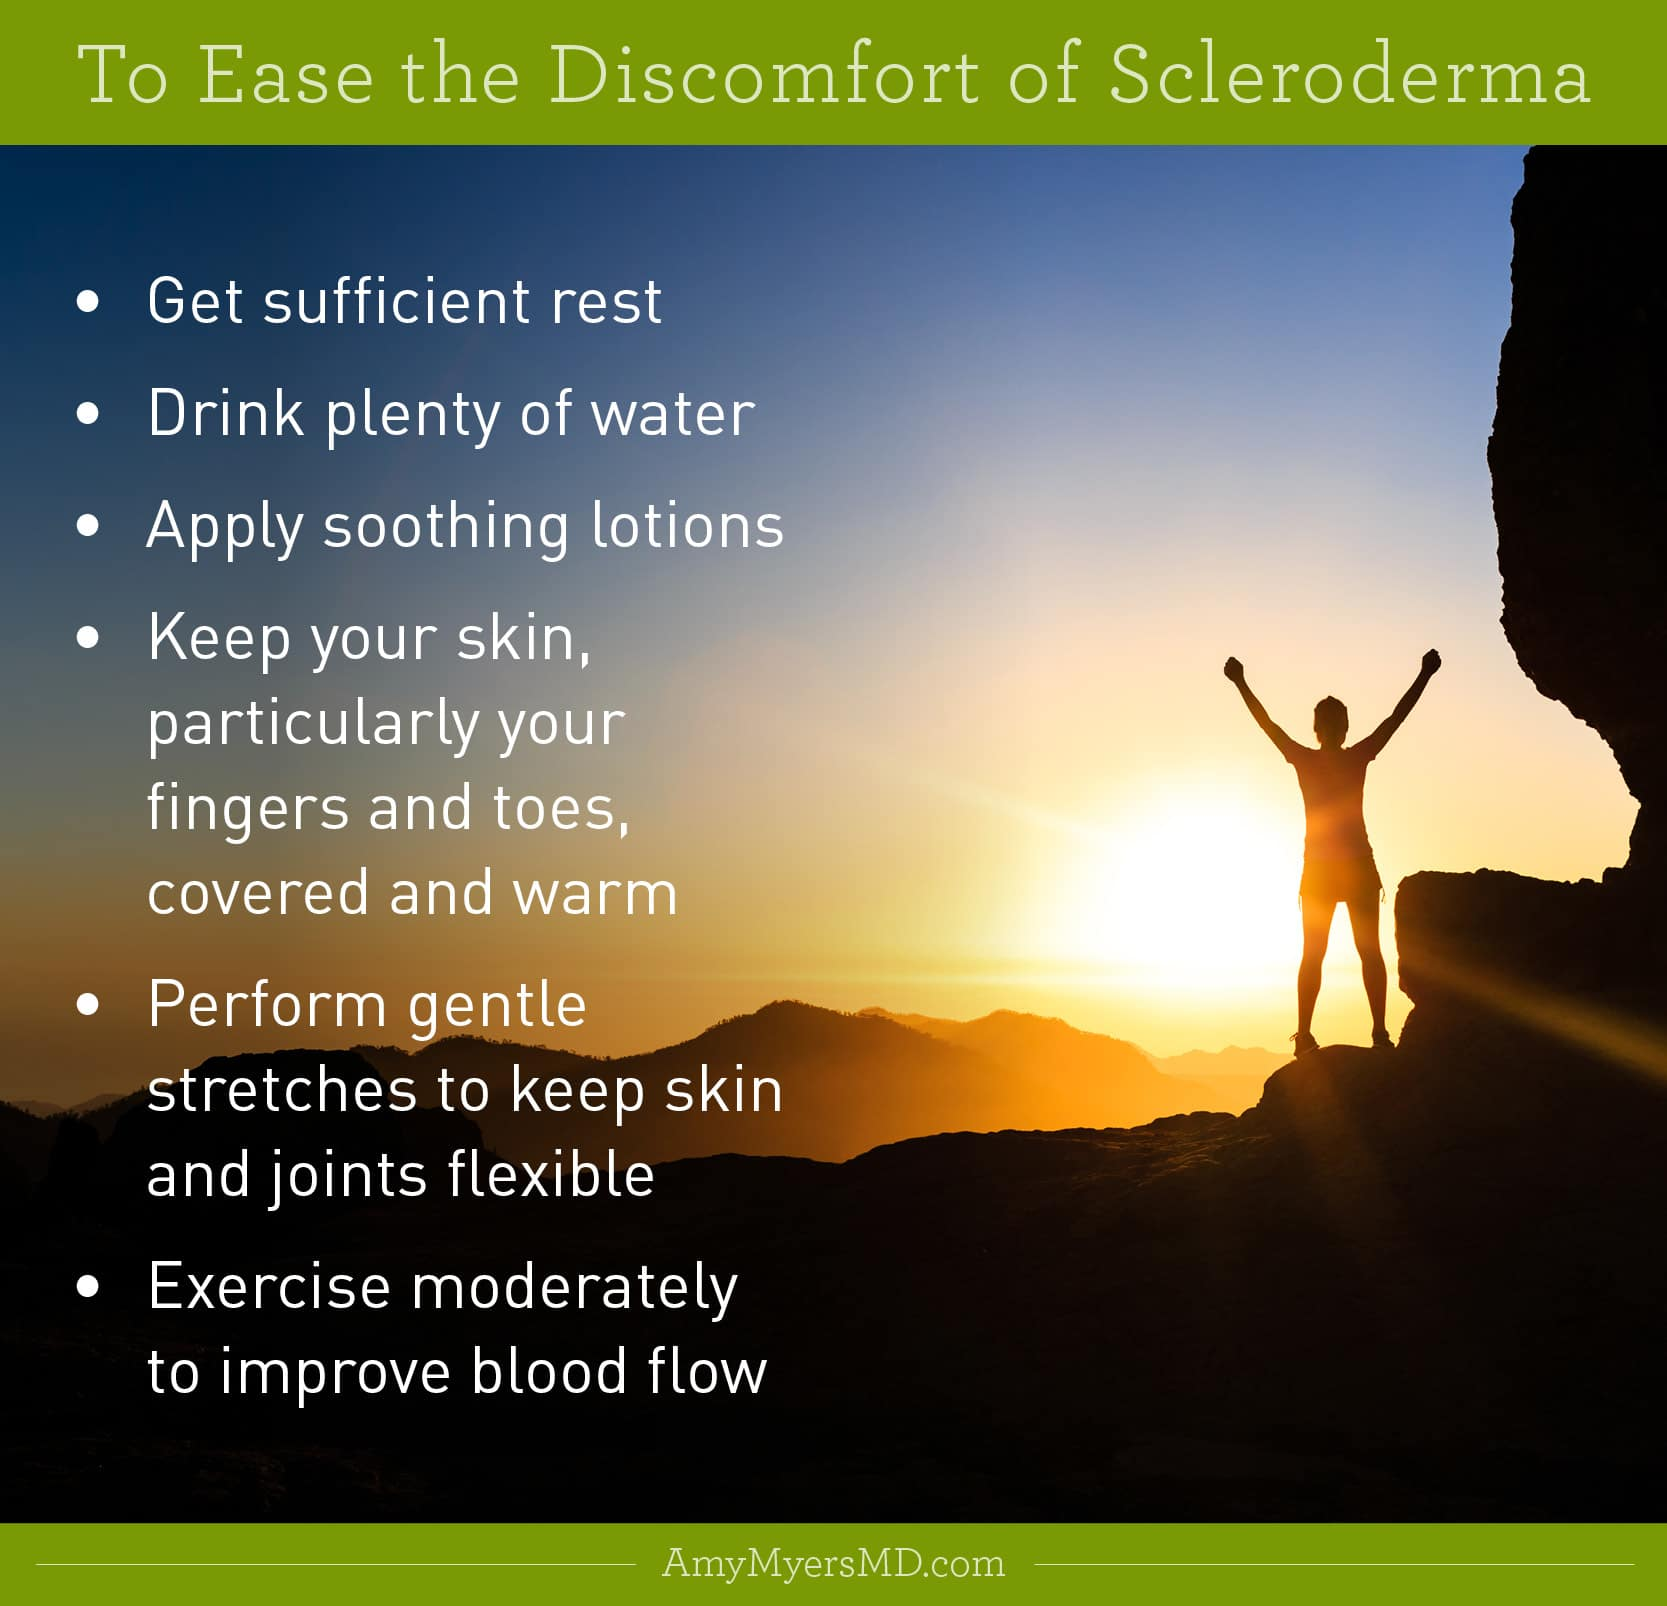 reverse scleroderma naturally